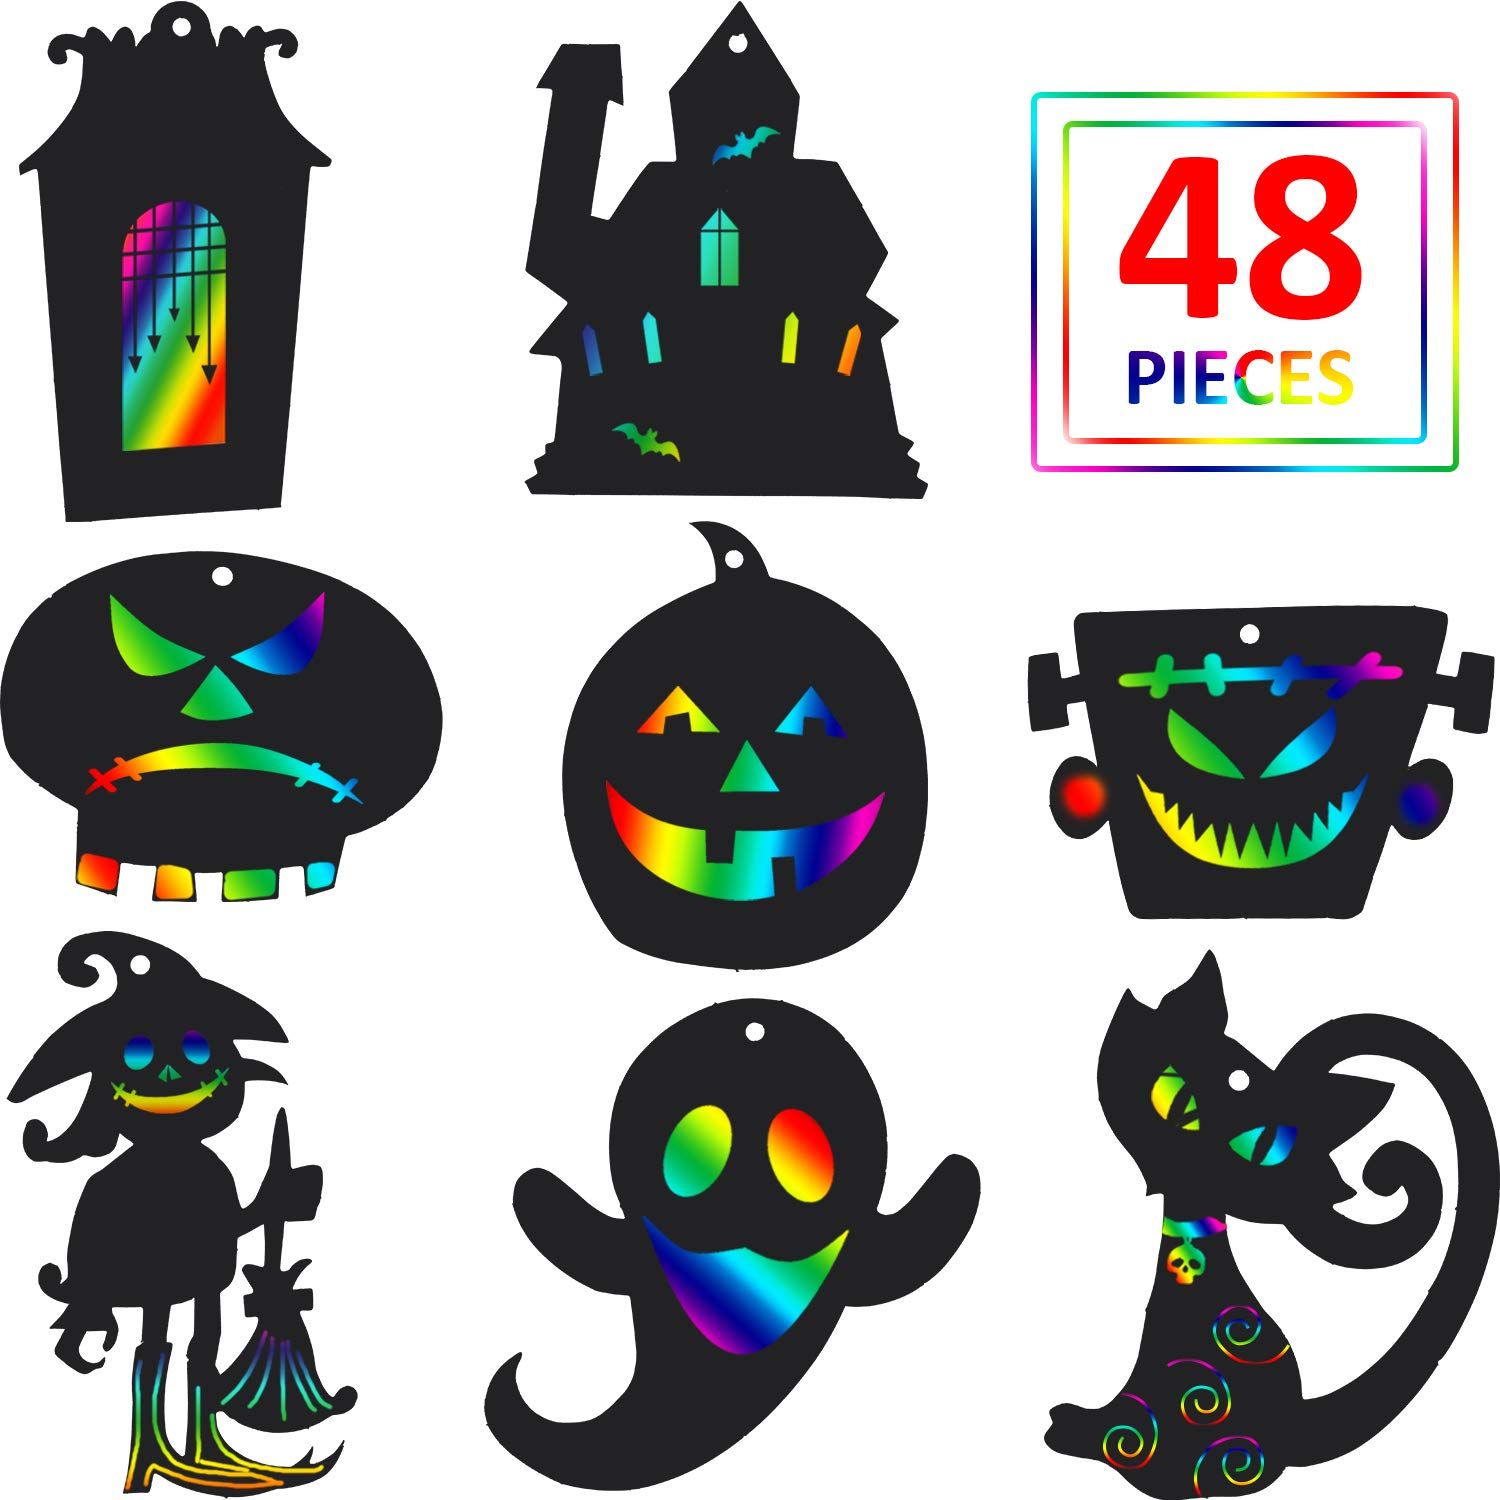 Blulu 48 Pieces Halloween Scratch Paper Rainbow Witch Pumpkin Scratch Crafts Kit Magic Halloween Hanging Ornaments Art with Wooden Stick and Rope for Party Decoration DIY Supplies by Blulu